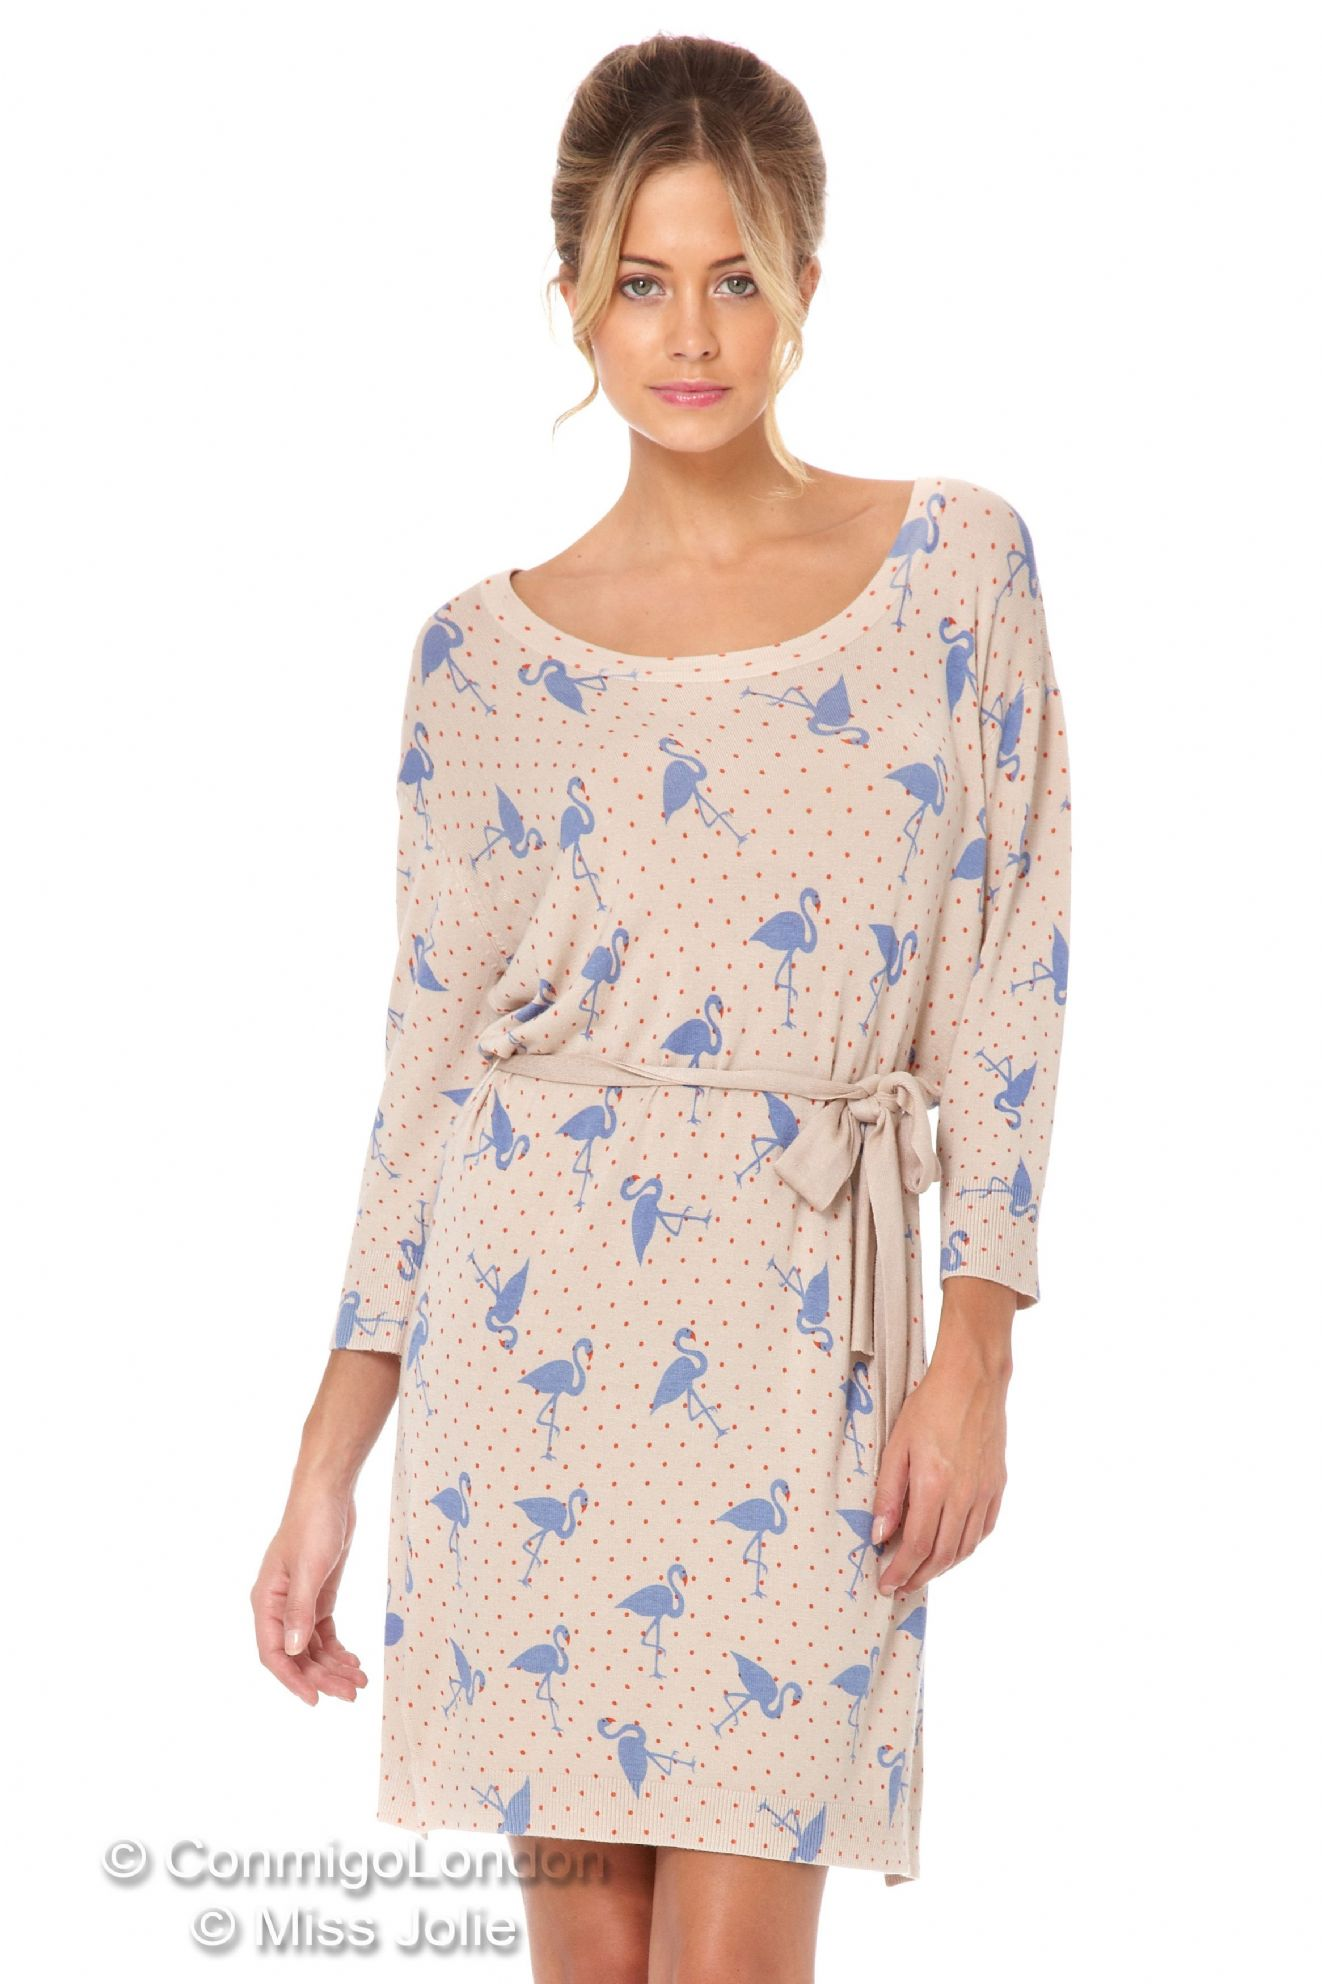 http://www.conmigolondon.co.uk/ekmps/shops/conmigo/images/miss-jolie-blue-flamingo-print-jersey-dress-beige-1287-p.jpg